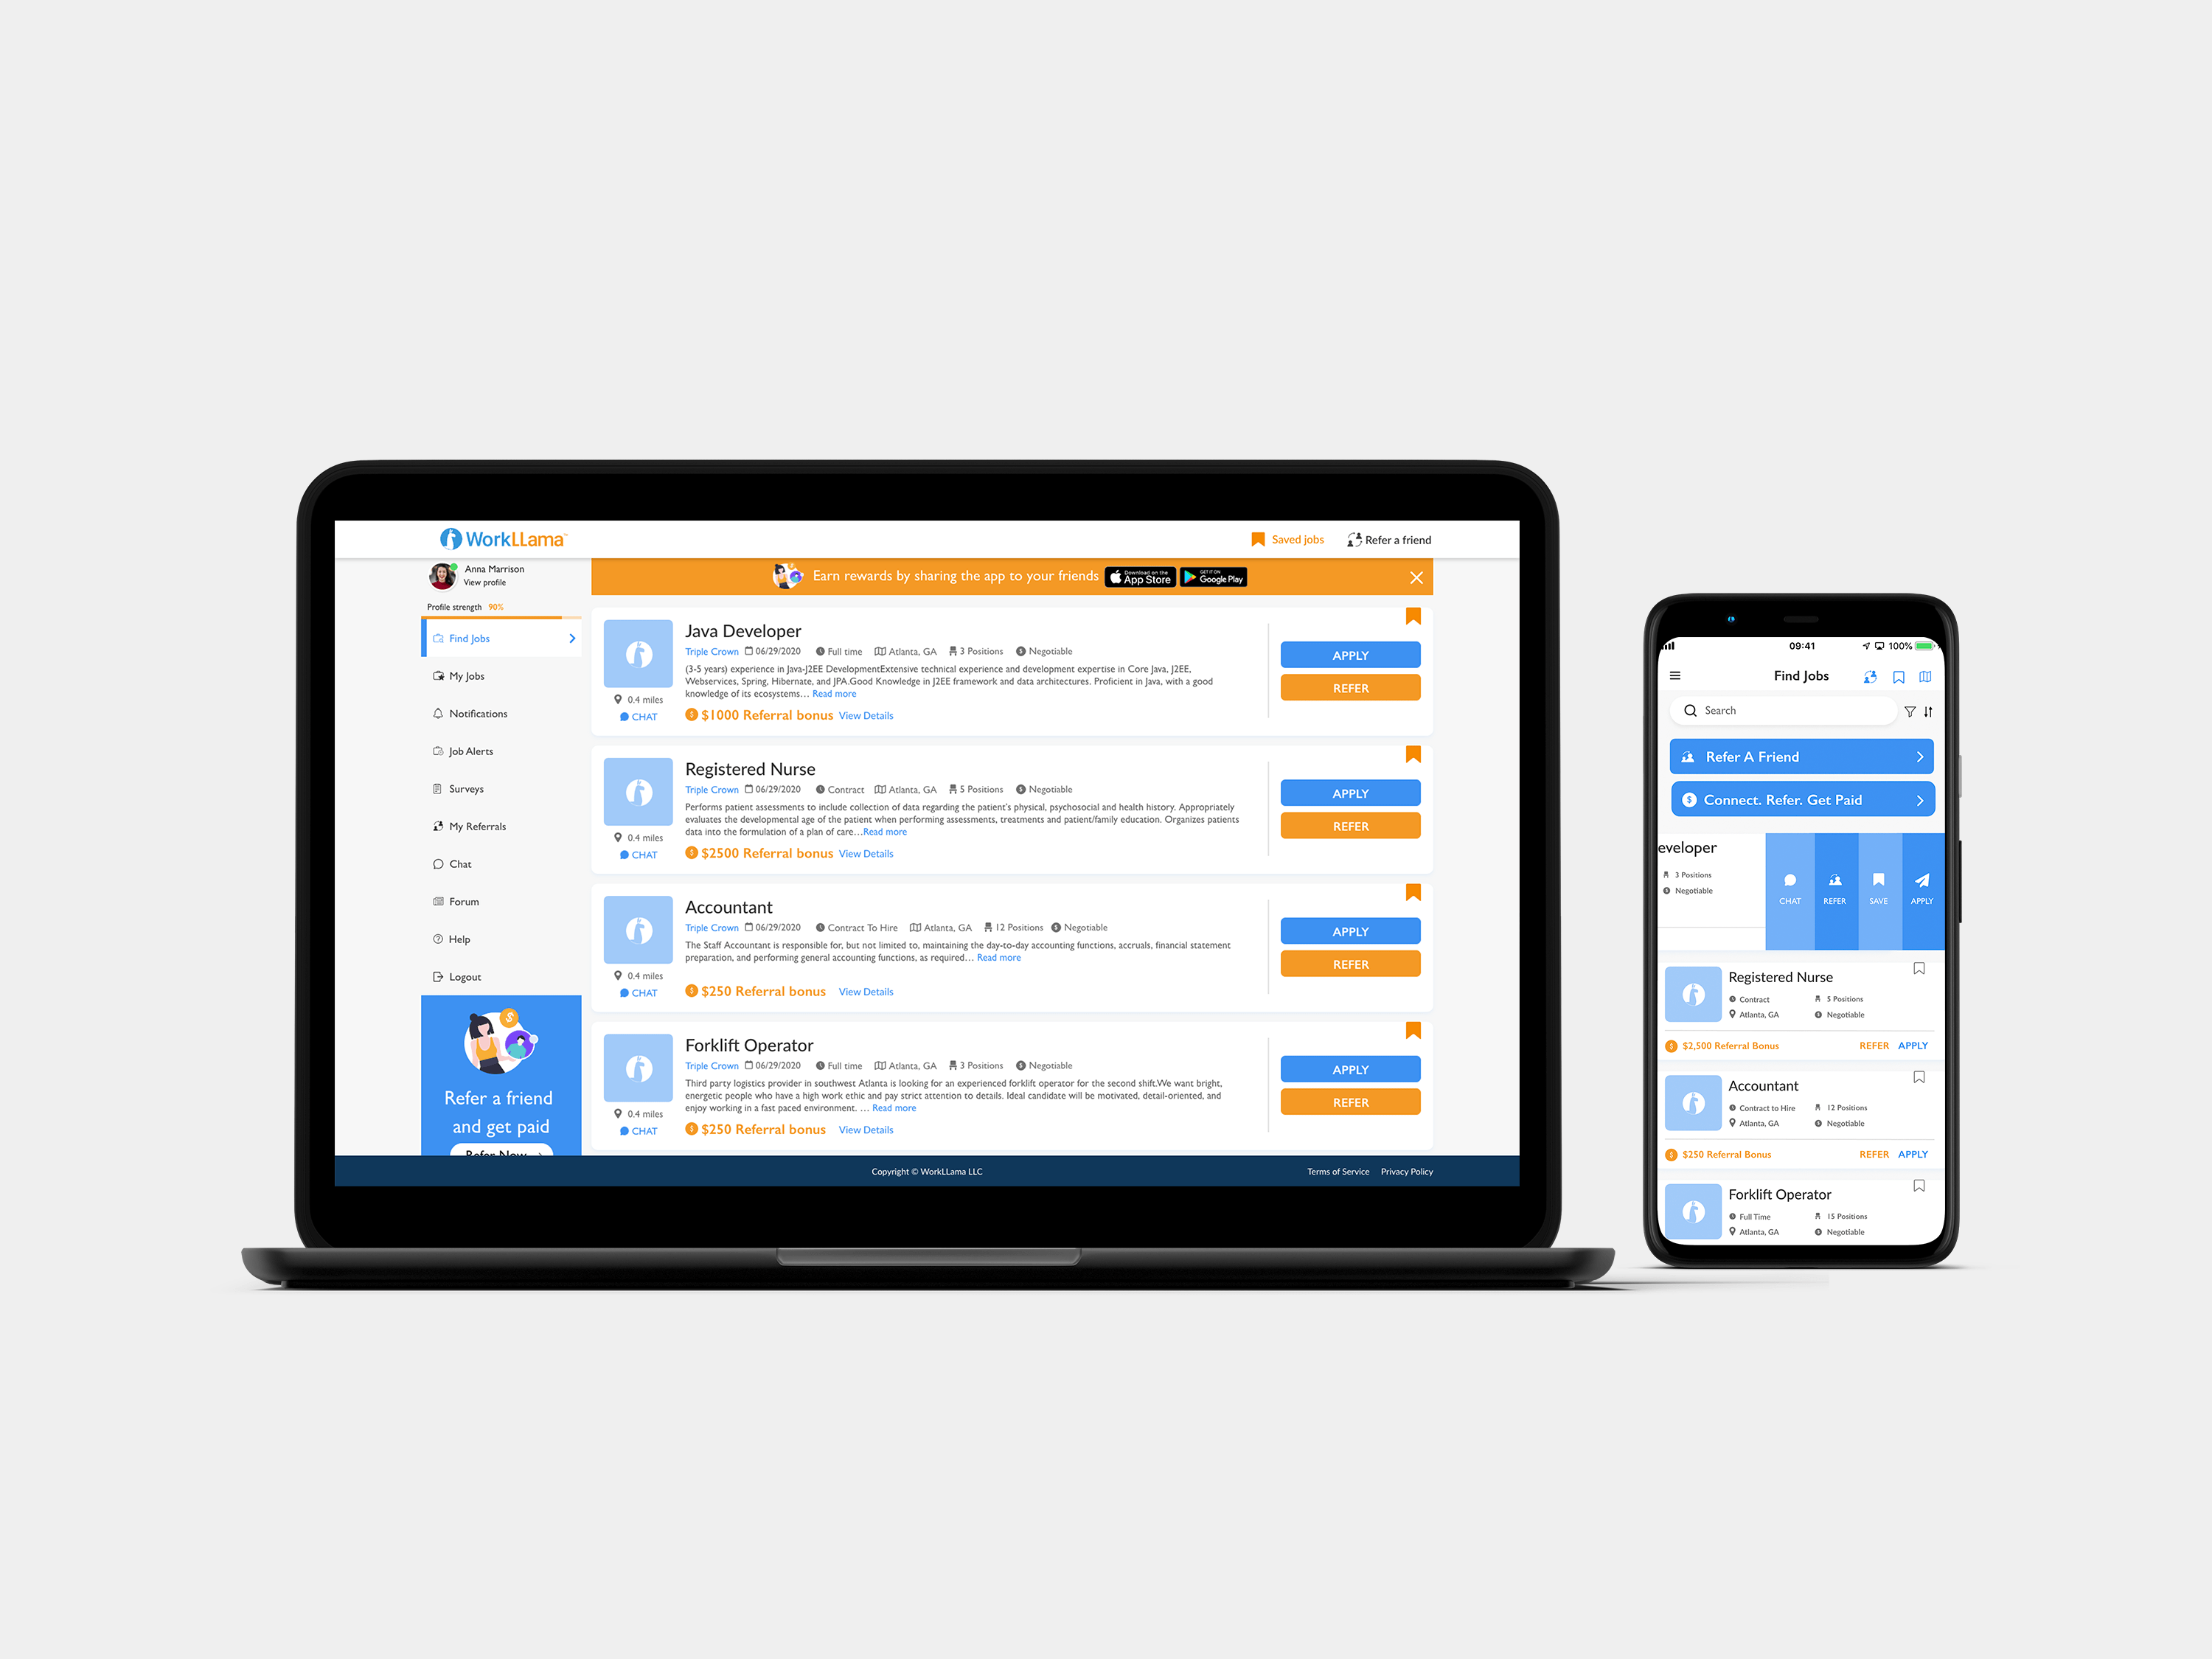 WorkLLama Software - Anytime, Anywhere, Any Device Access